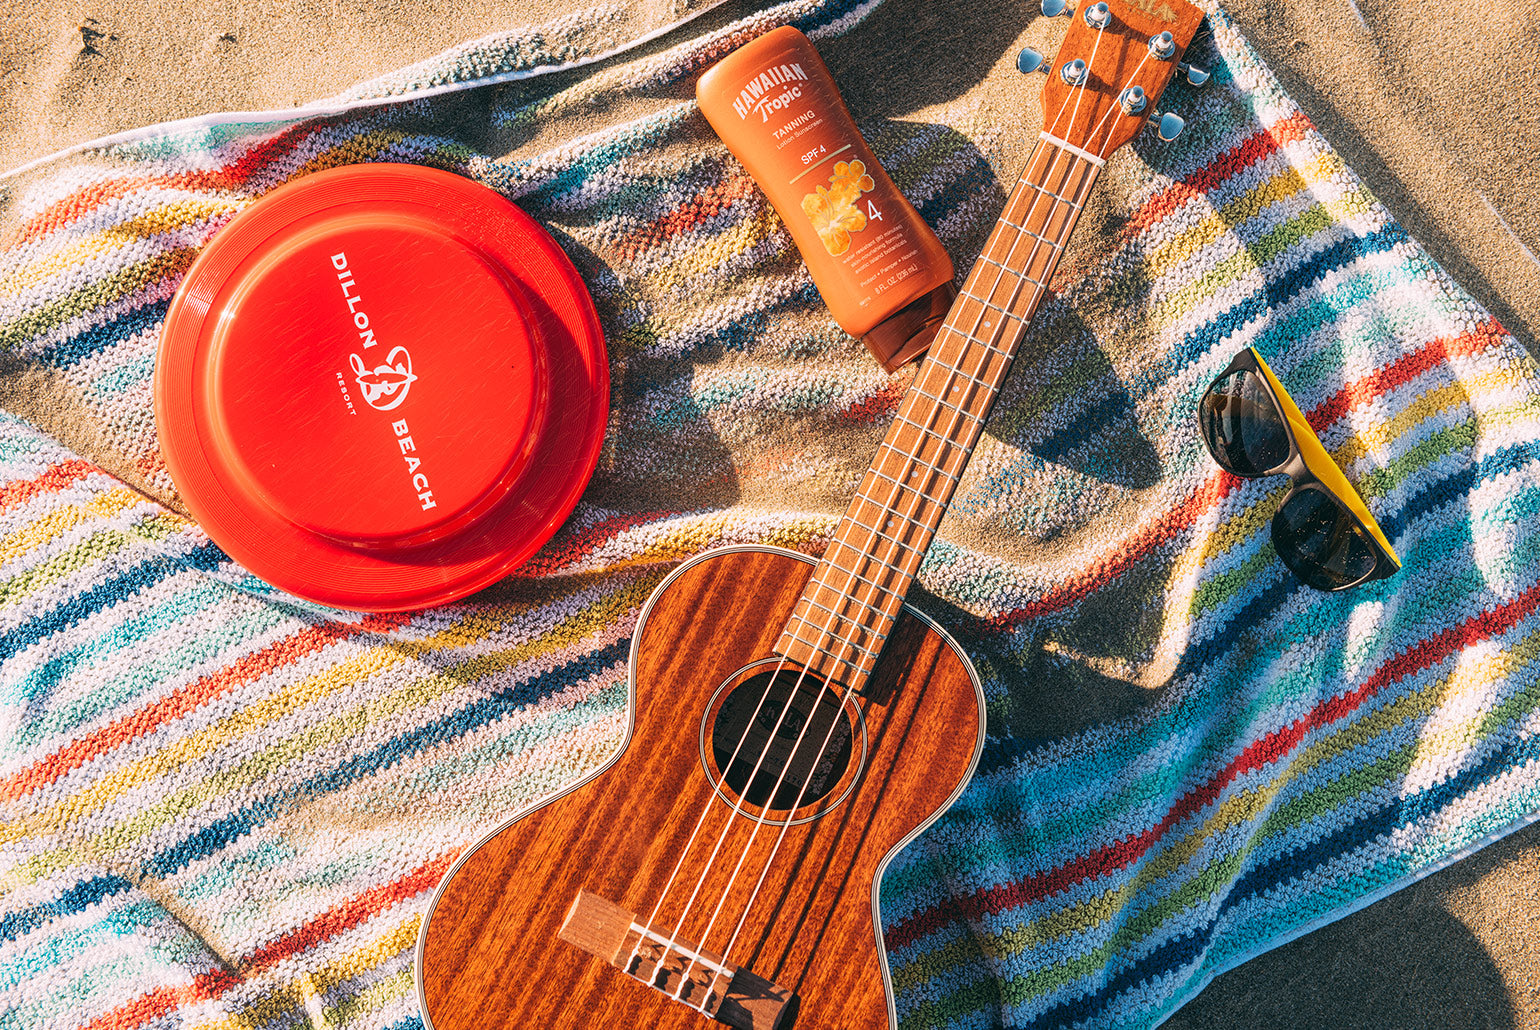 Kala Gloss Mahogany Tenor Ukulele at the Beach